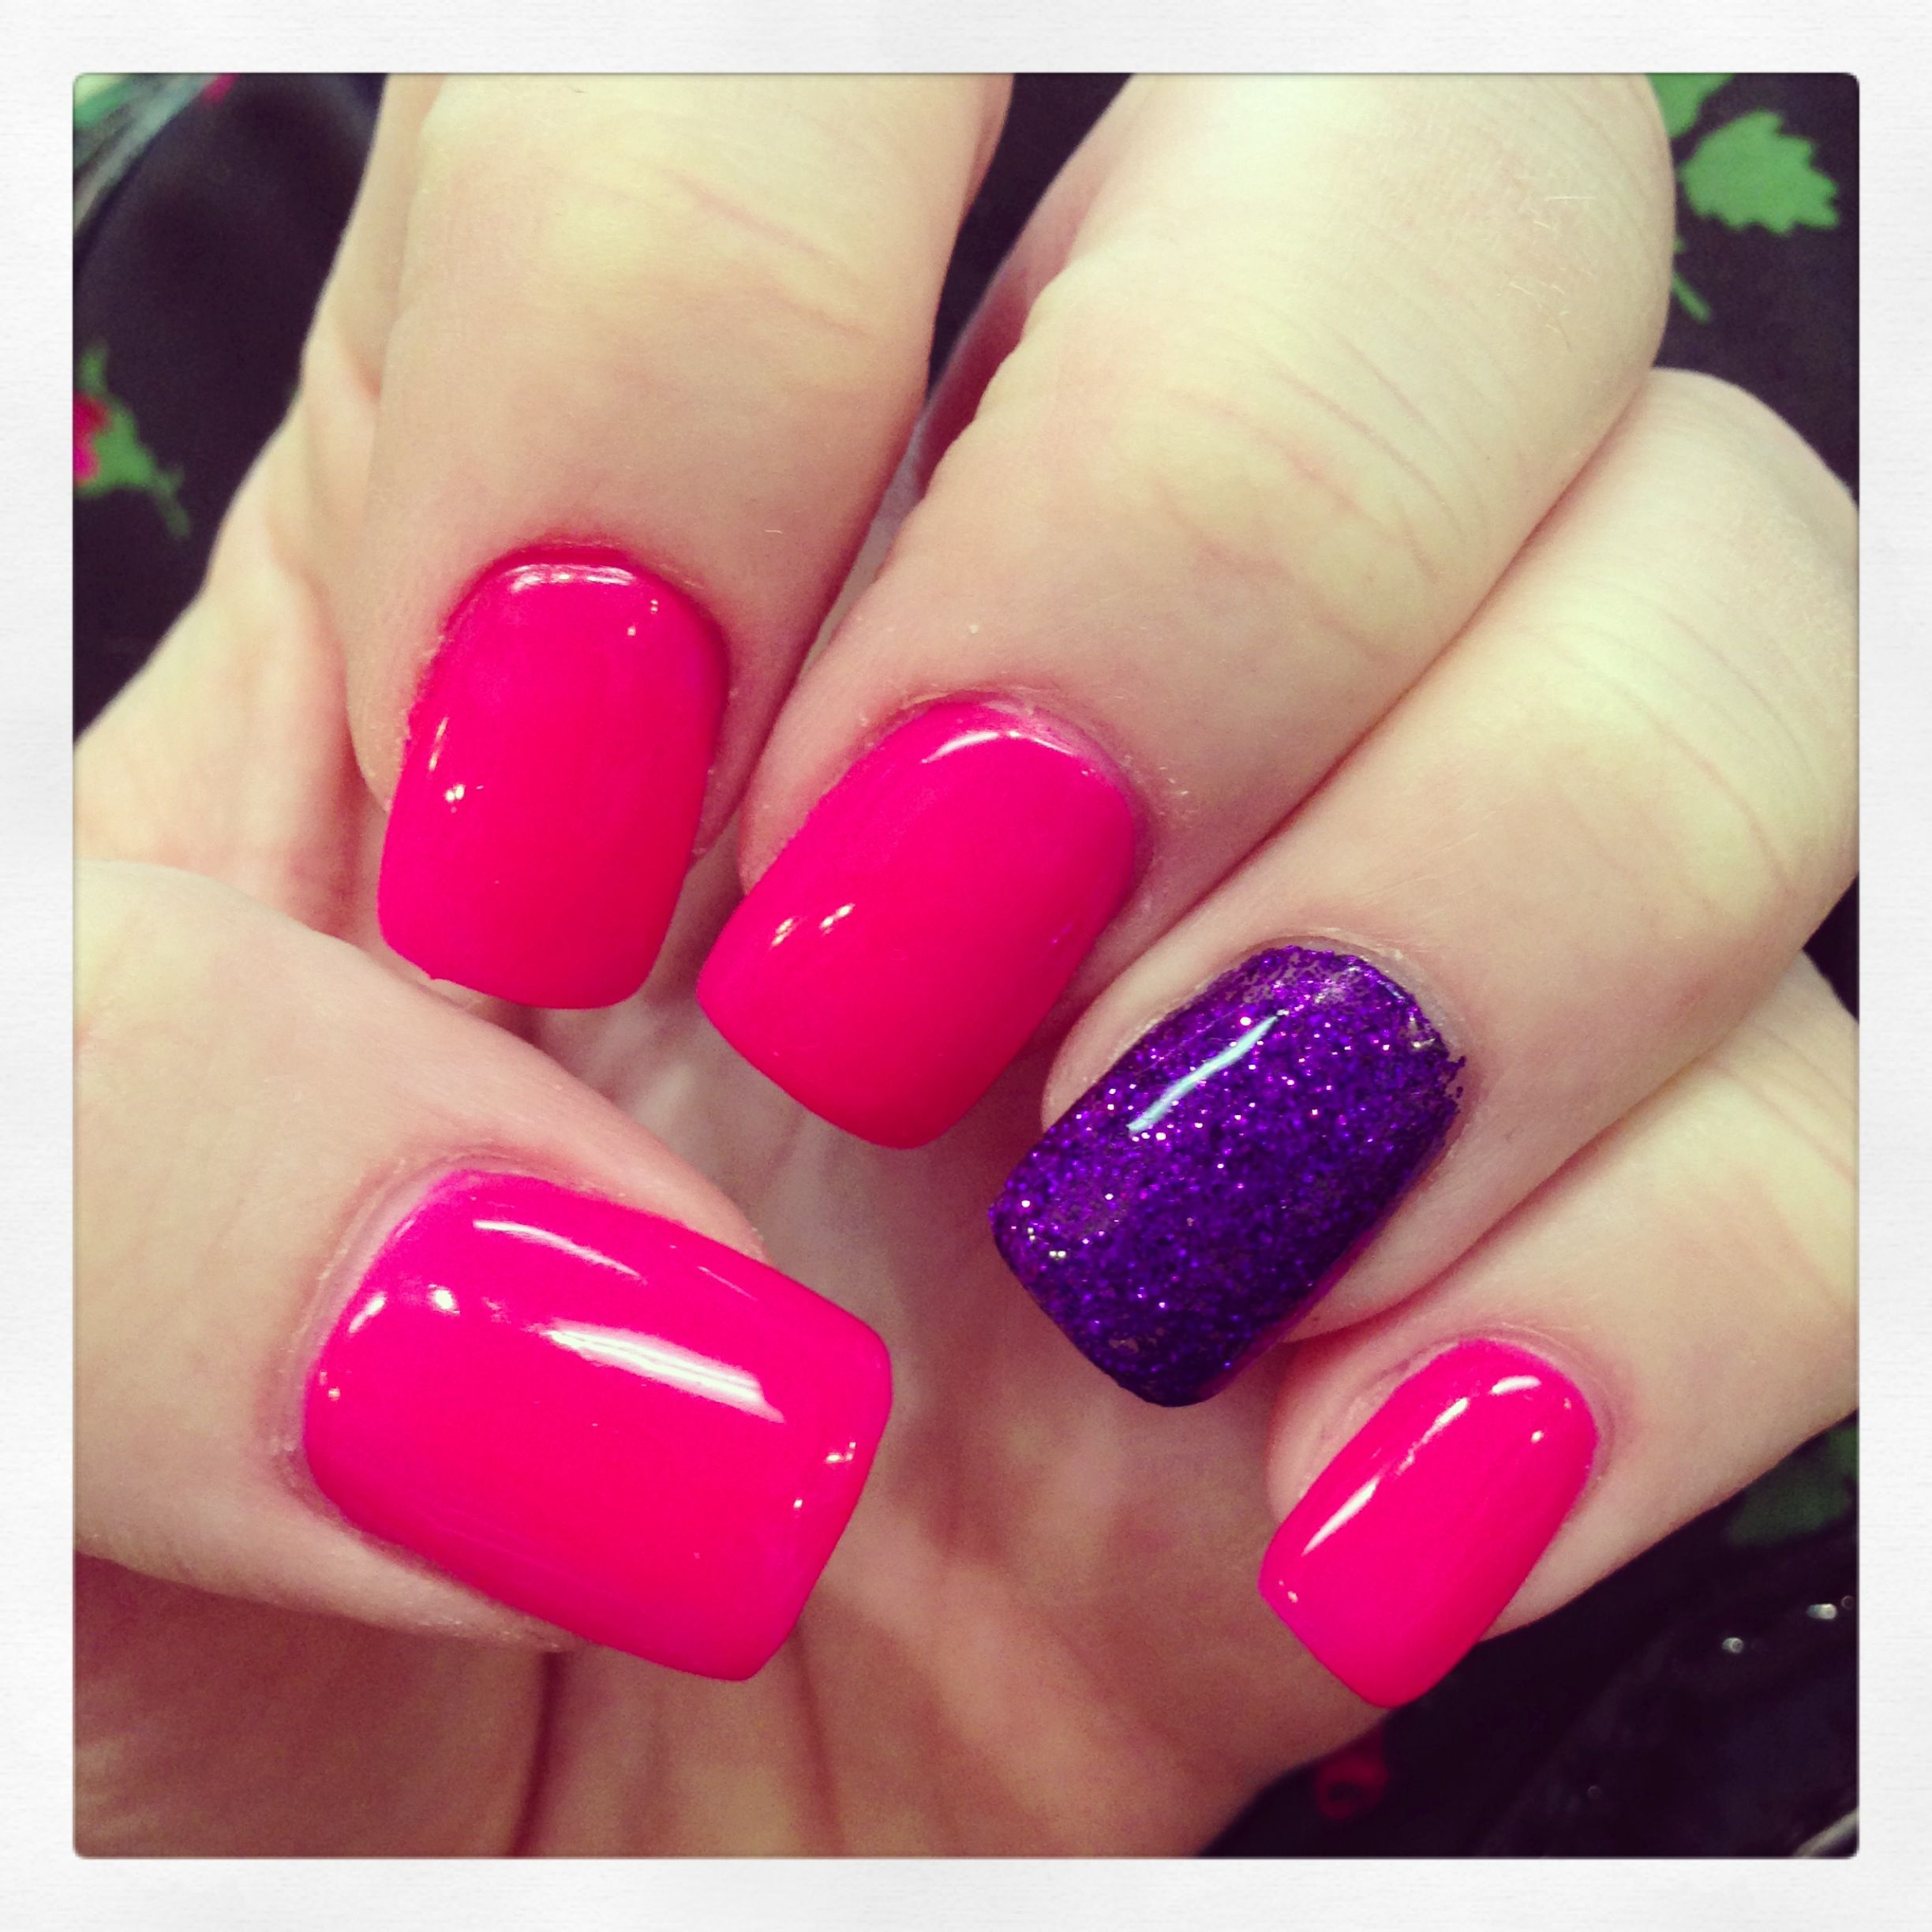 Hot pink gel nails with purple rockstar accent | My Nails ...